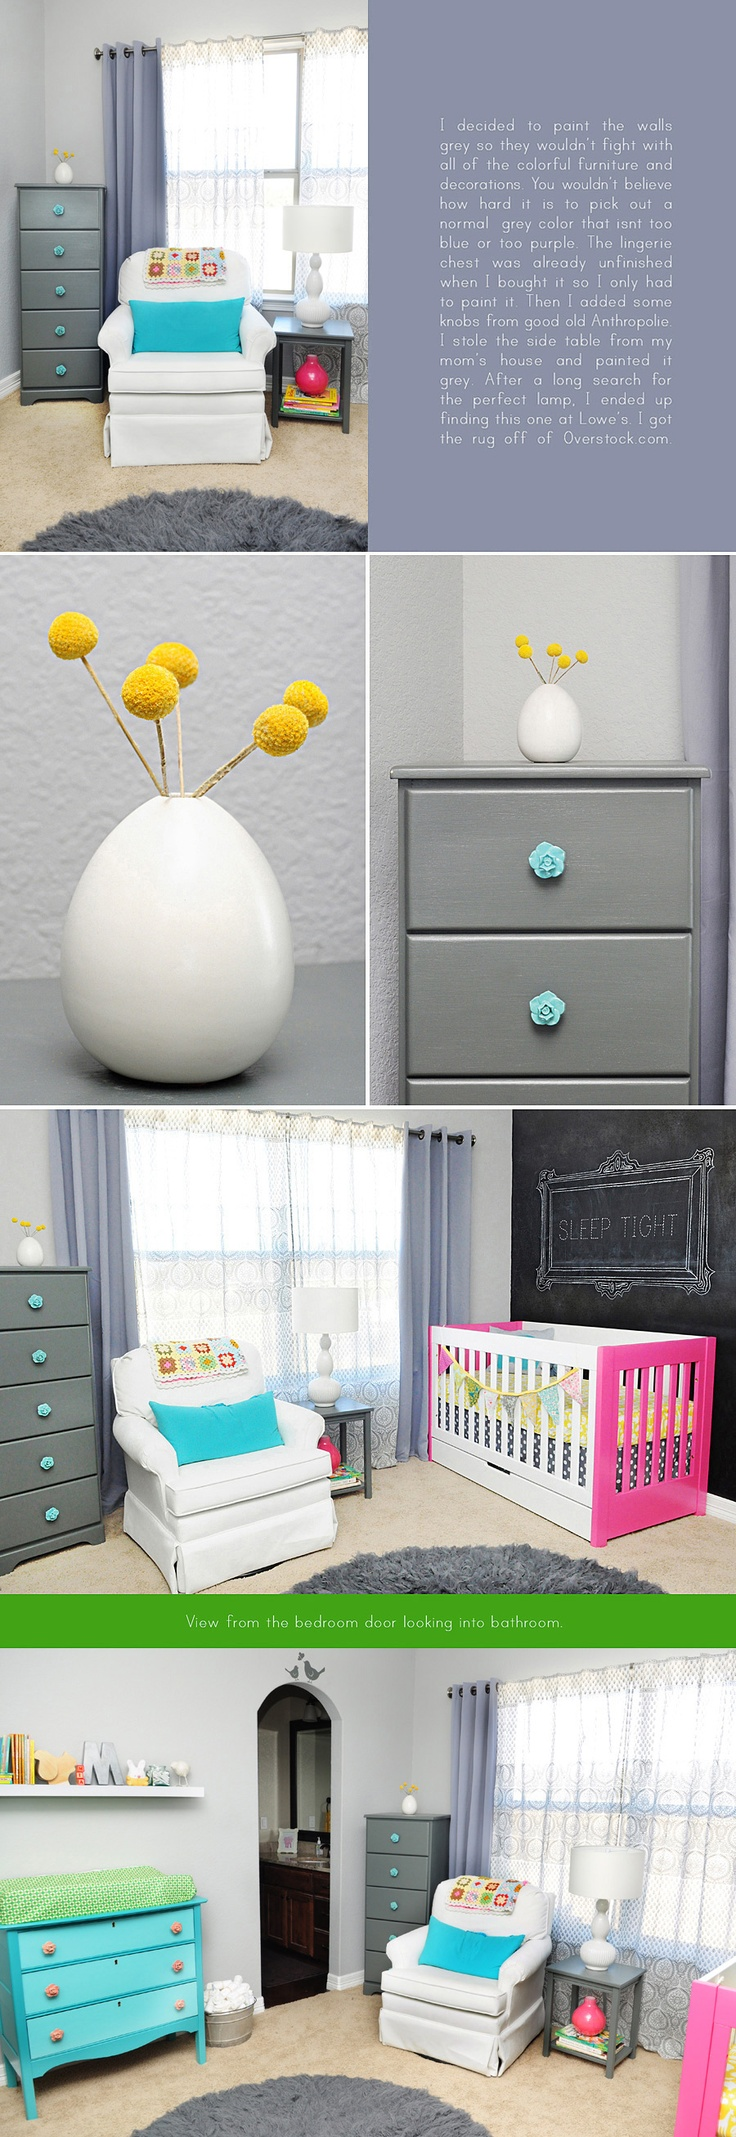 The flower knobs on that dressers just about kill me dead, but this whole nursery is probably the most gorgeous room I've ever seen.